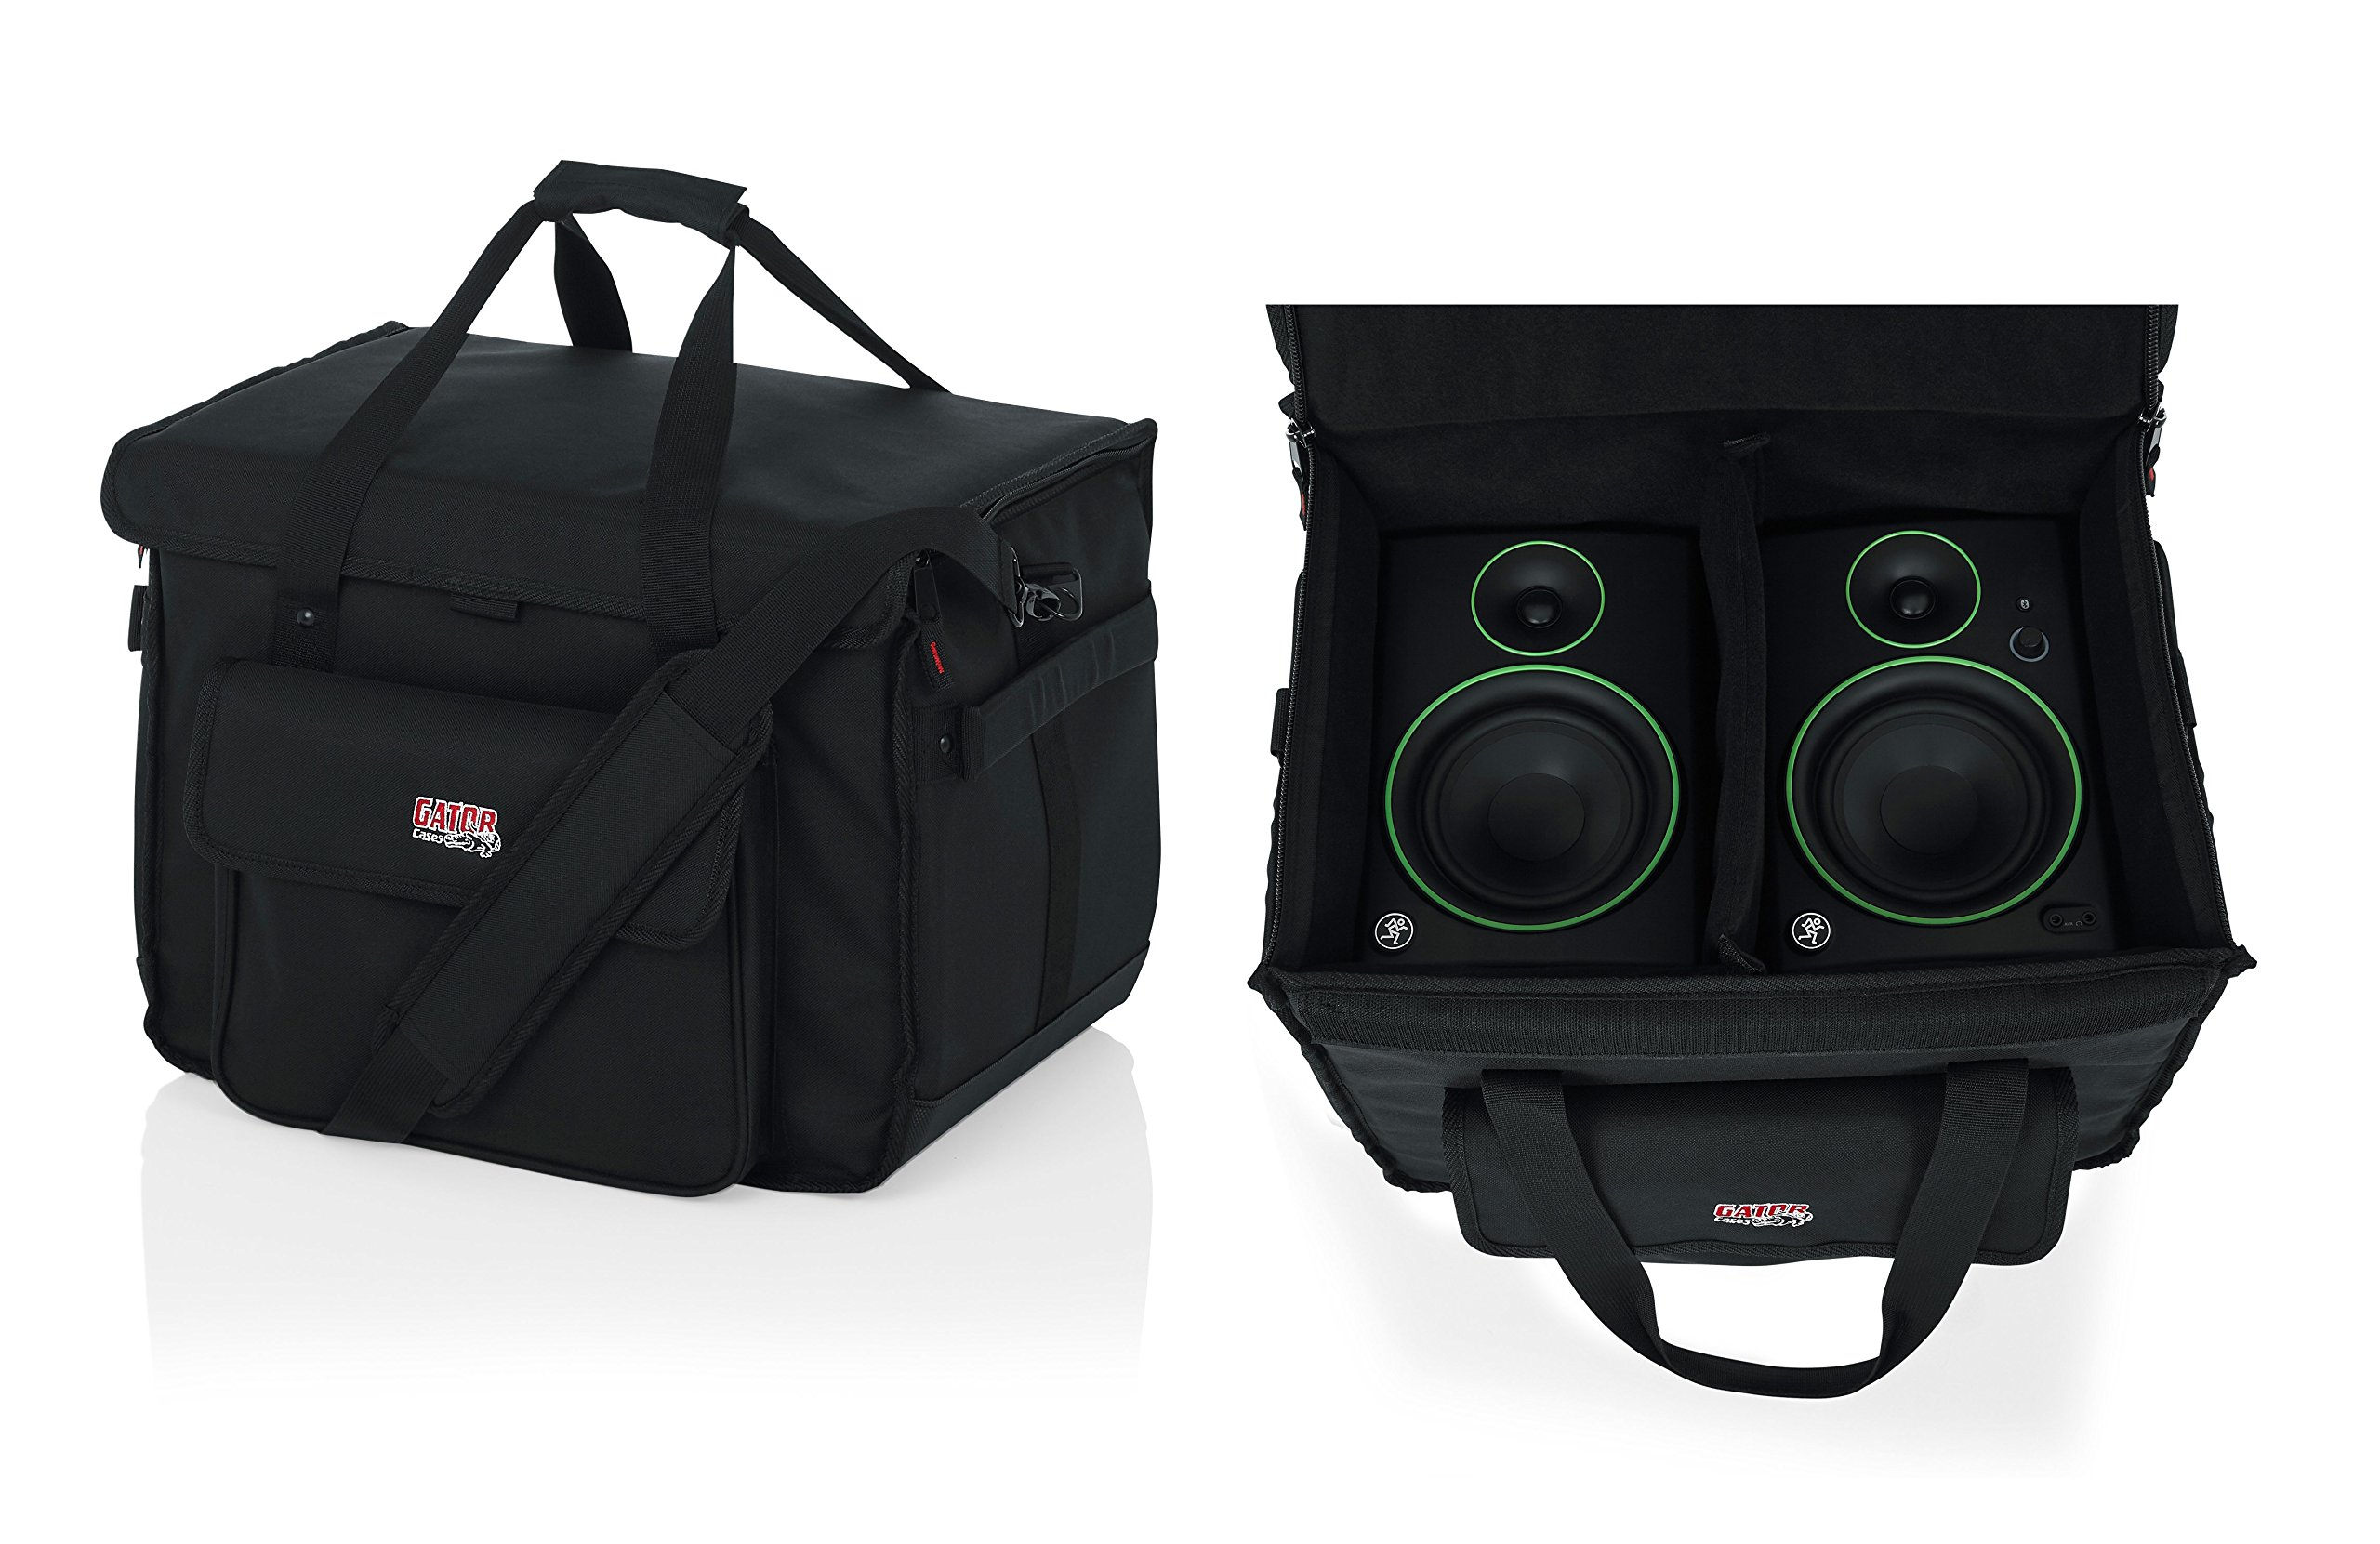 Gator Cases Studio Monitor Tote Bag Holds (2) Powered Monitors Up to 5'' Driver Range; Fits JBL, Mackie, KRK, More (G-STUDIOMON1)